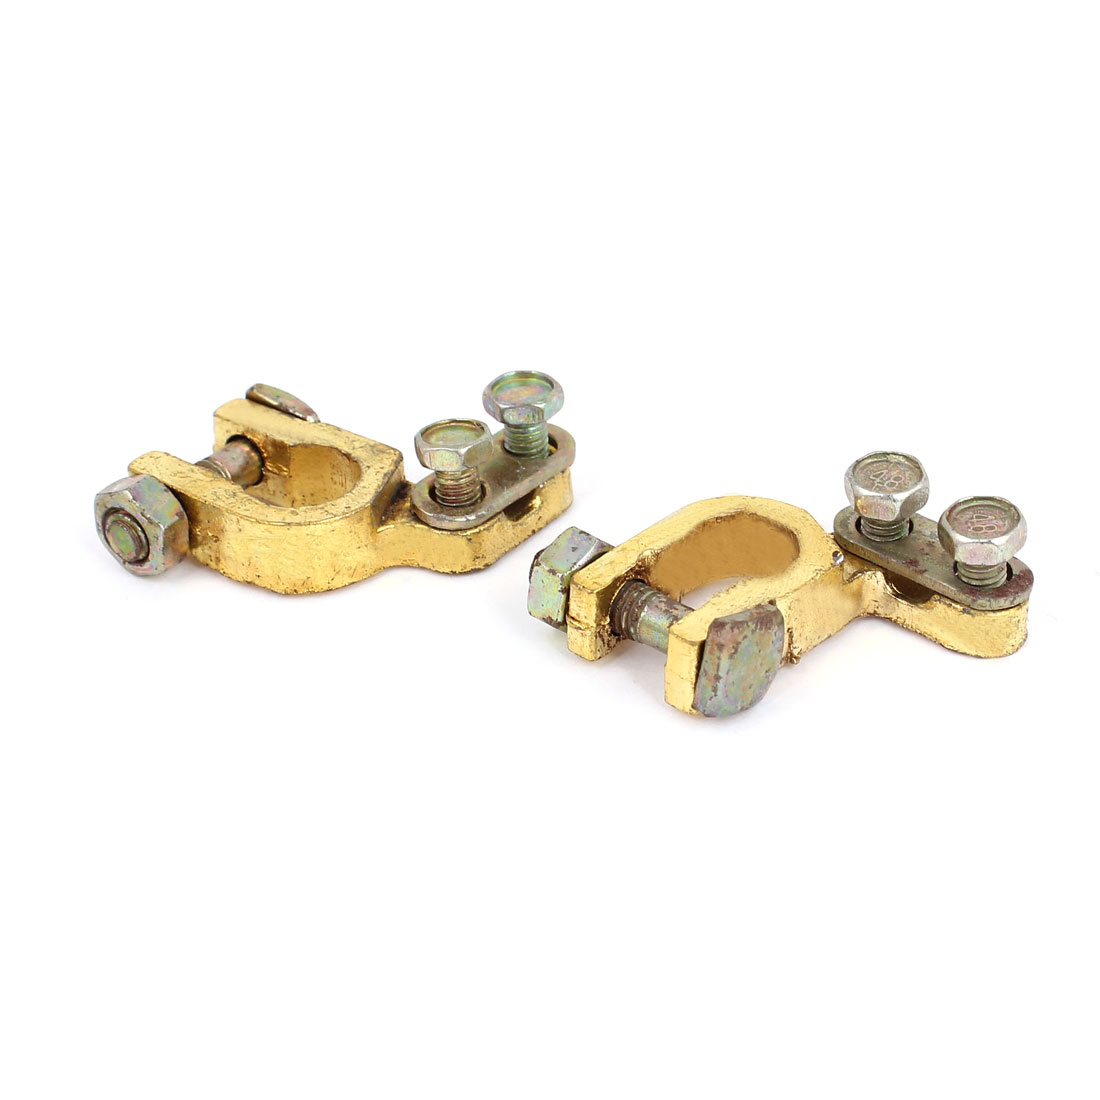 Replacement Auto Car Battery Terminal Clamp Clips Brass Connector 2Pcs